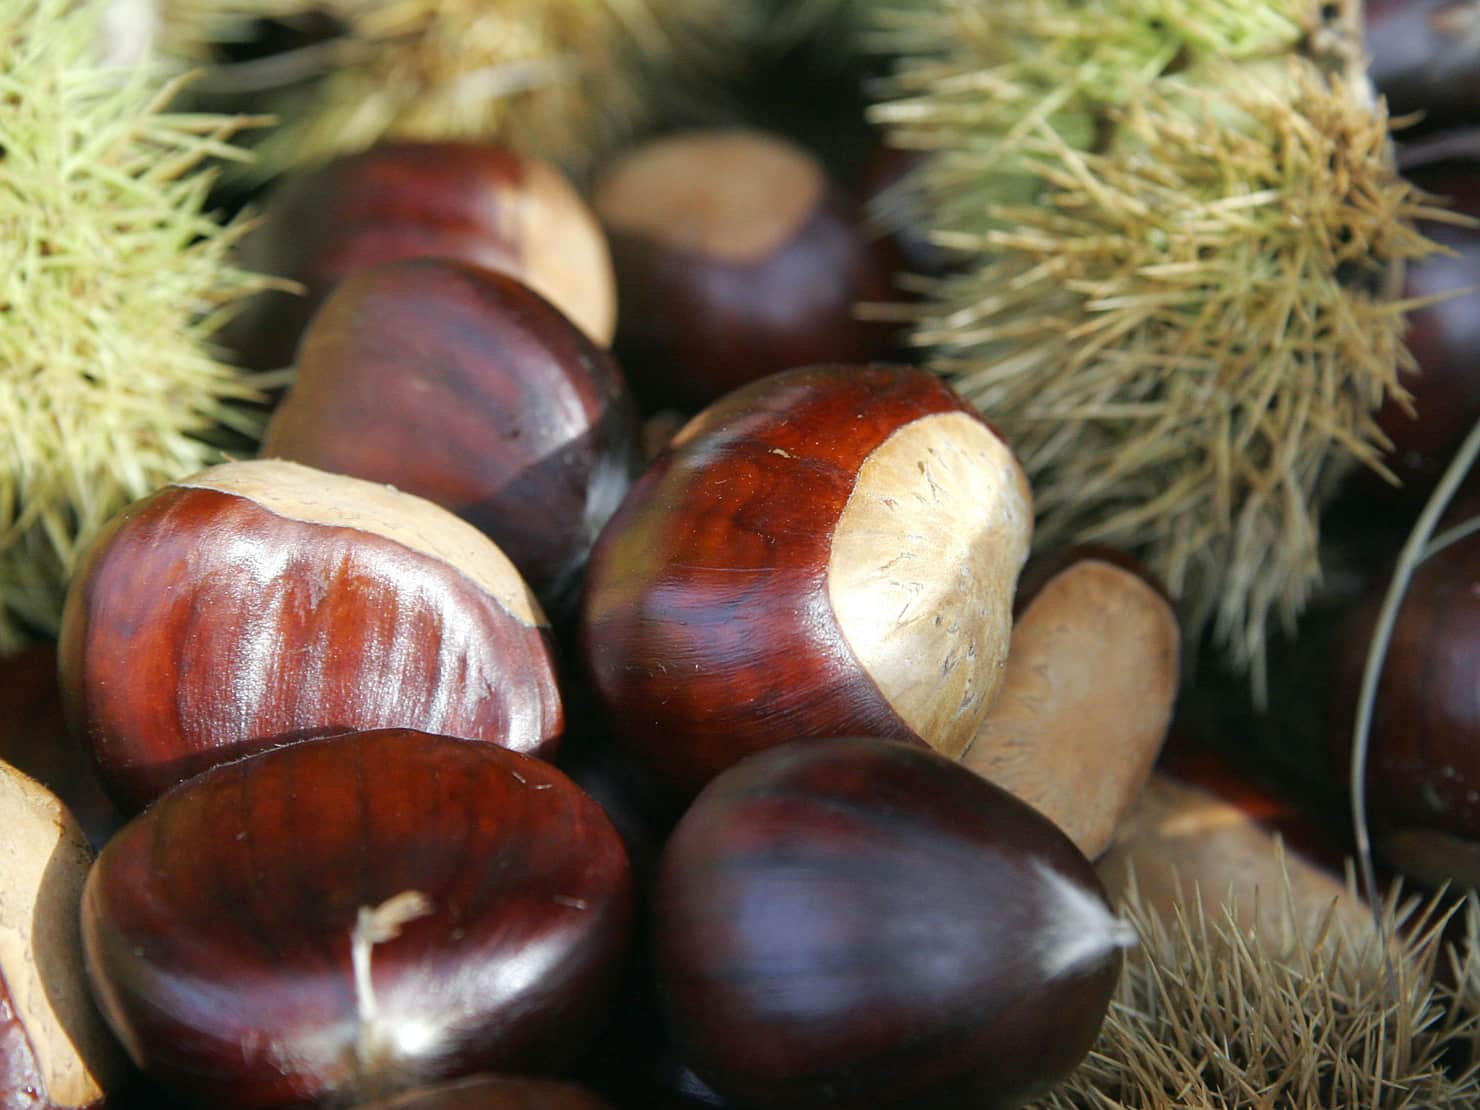 chestnut festival elos chania crete, chestnut festival inachori chania crete, chestnut event celebration chania, chania events, things to do chania, activities chania